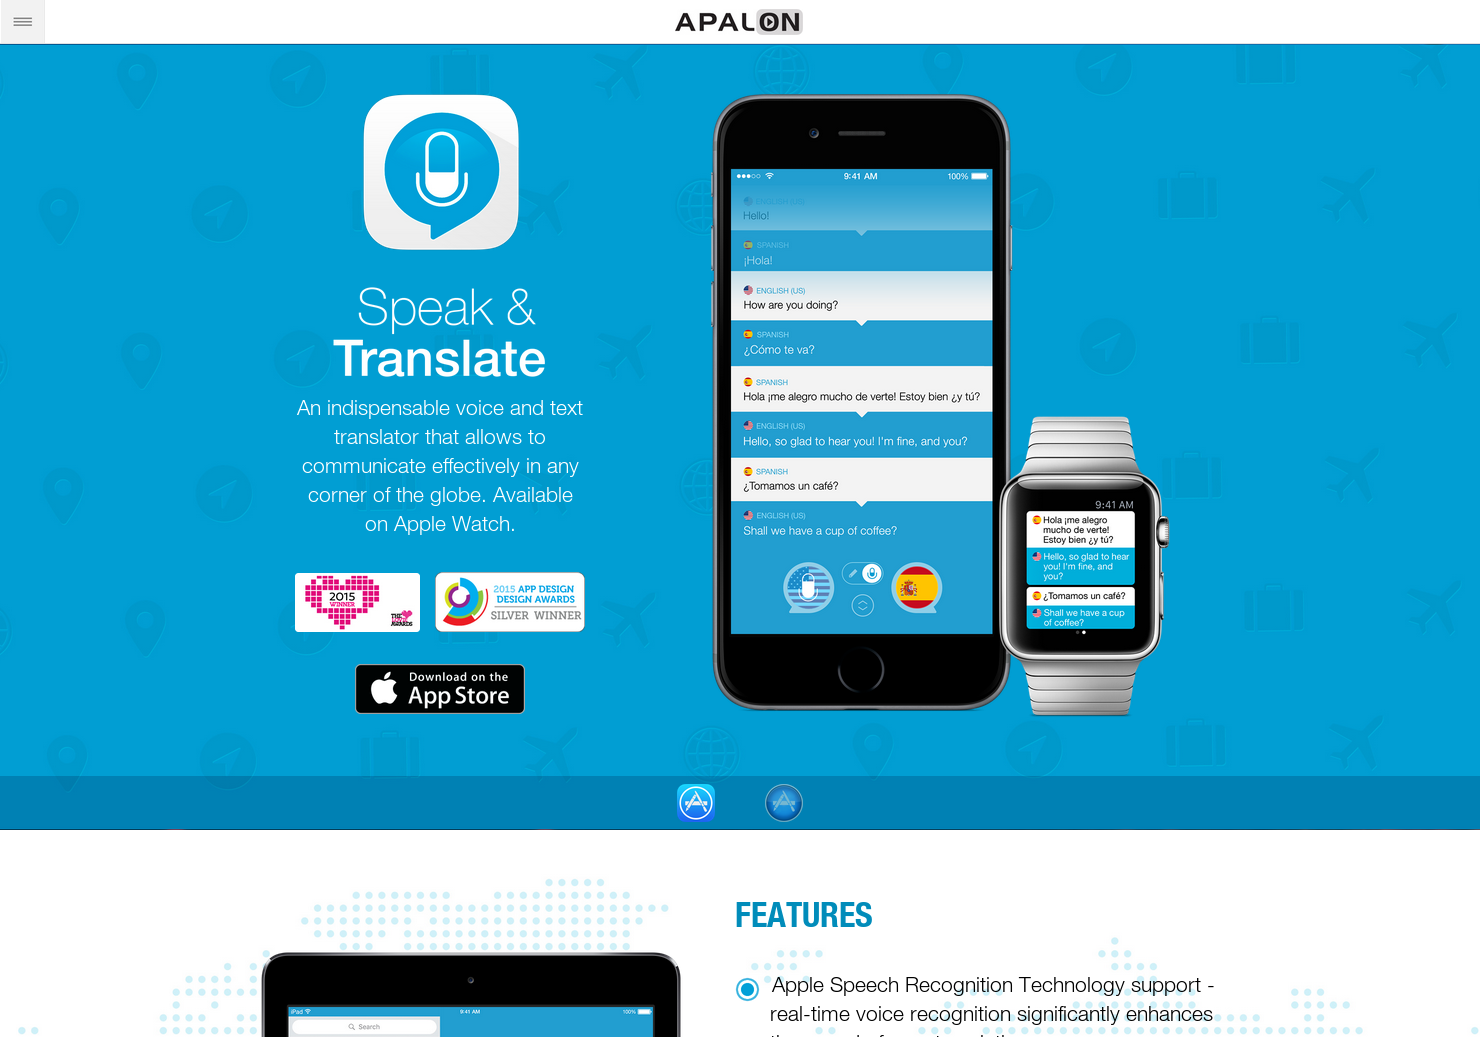 Speak & Translate - Instant Voice & Text Translator with